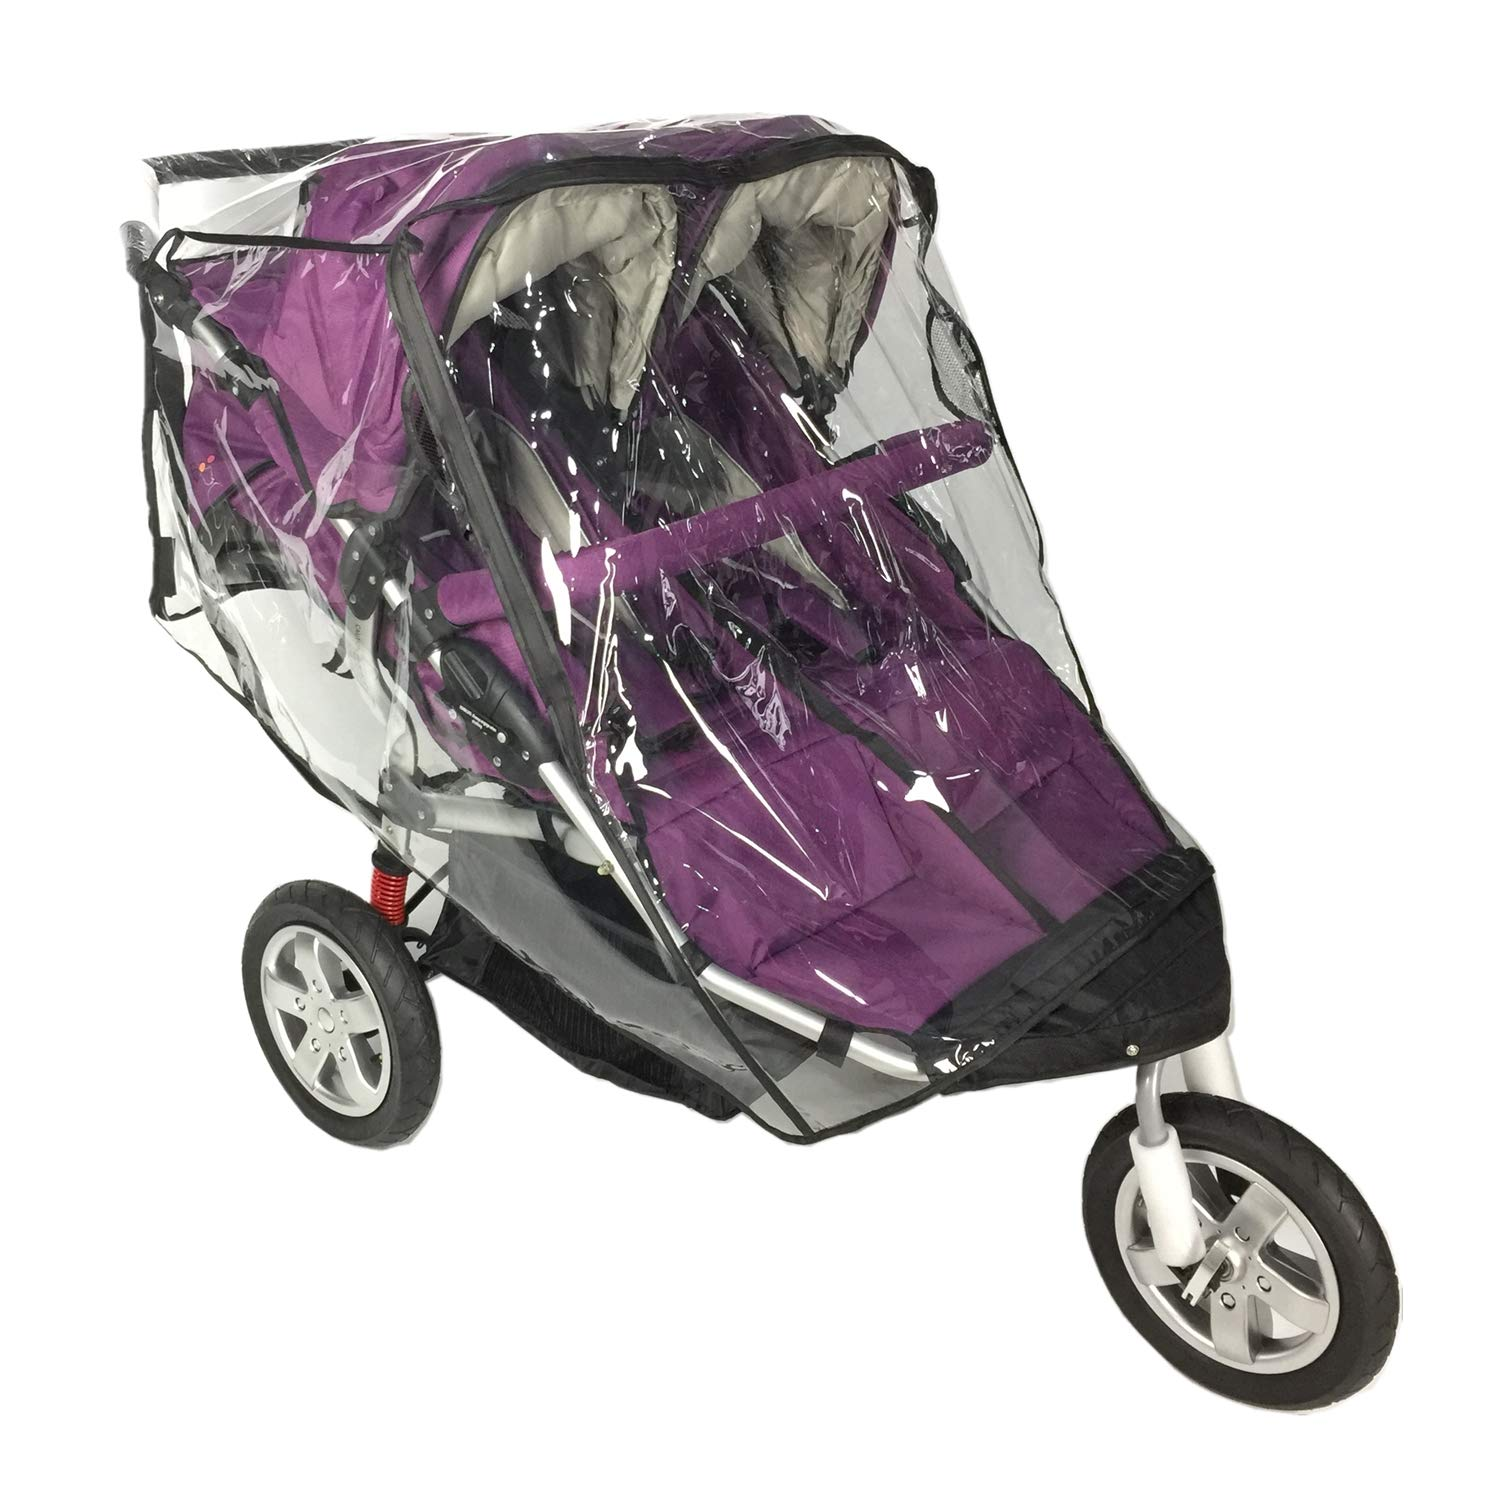 Rain Cover for Double Stroller,Universal Size Weather Shield for Side by Side Double Baby Stroller. by EZTongPin